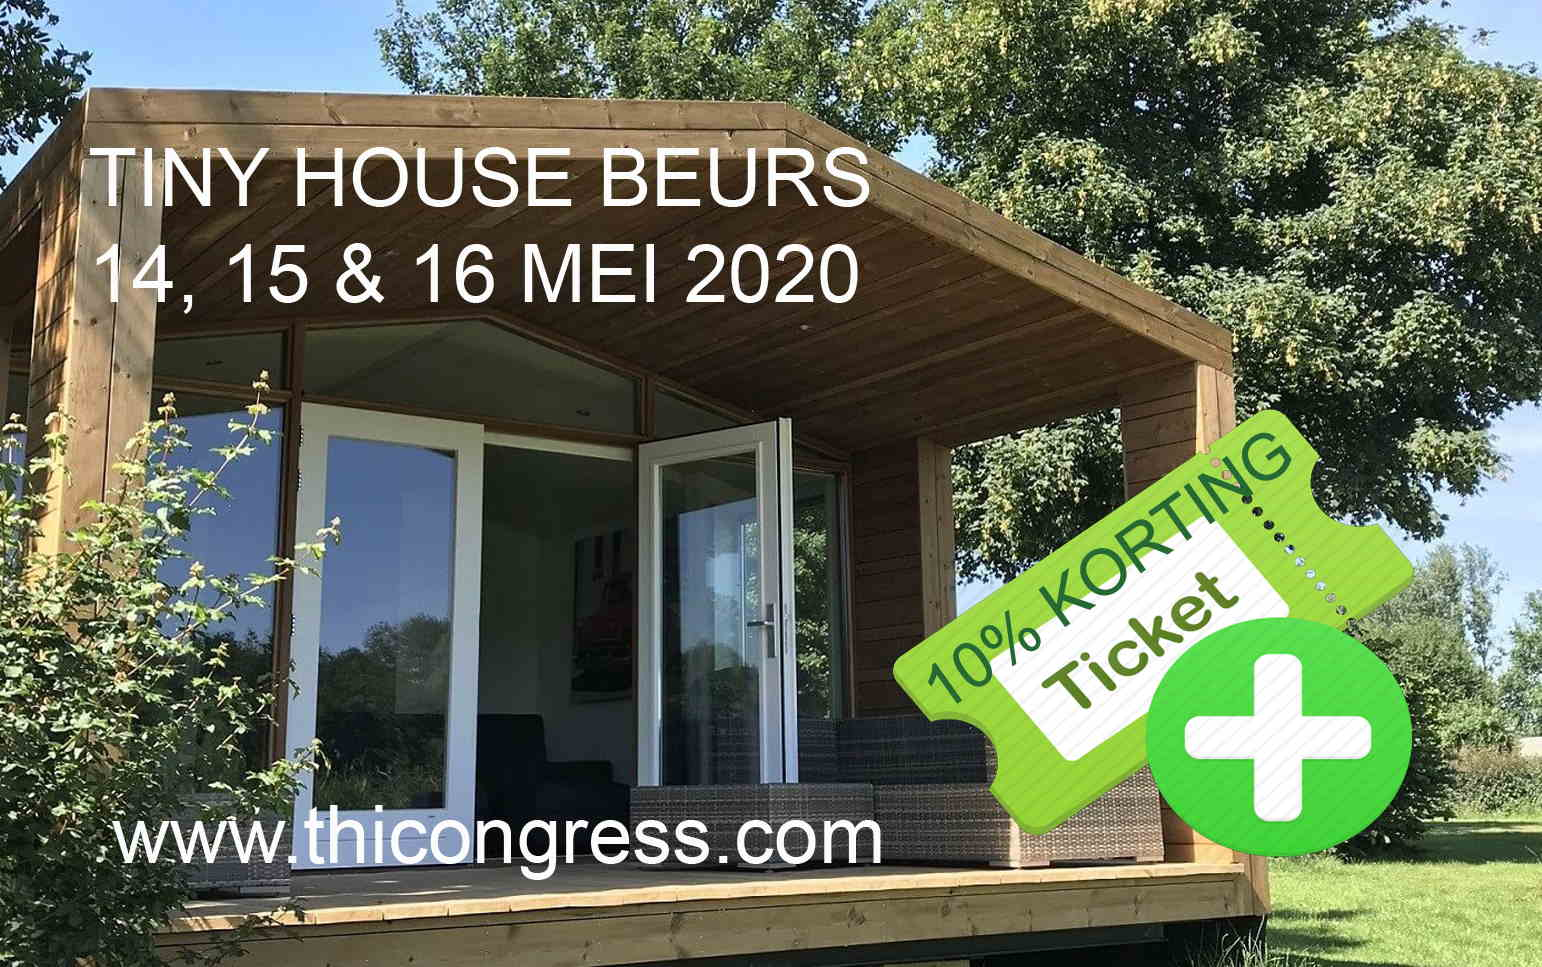 Tiny-House-Beurs-2020-Banner